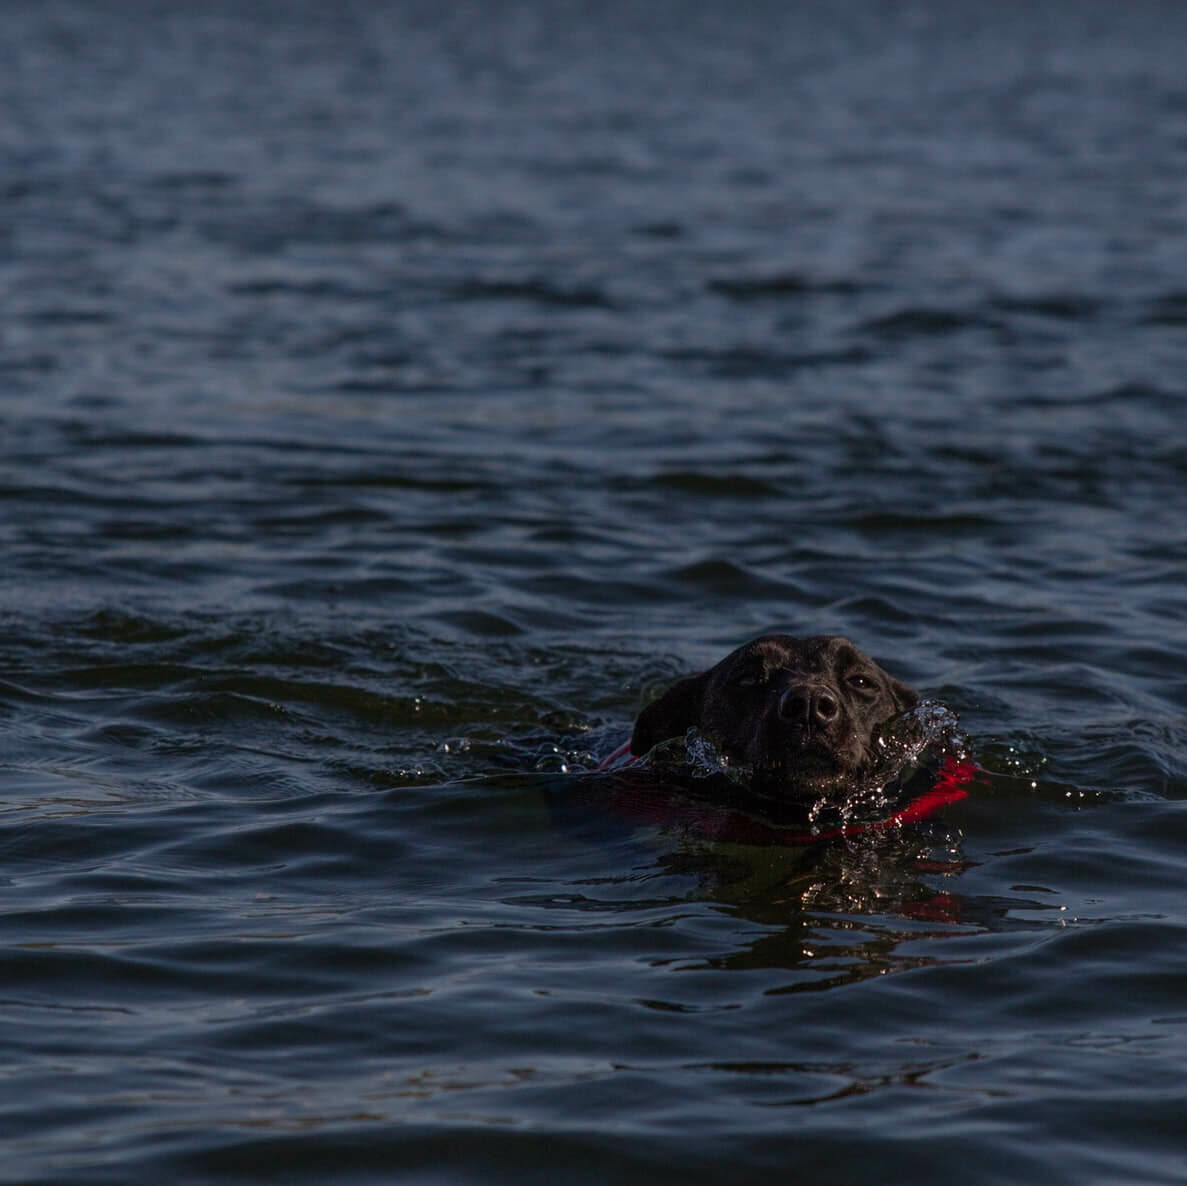 A dog swimming overboard in the ocean